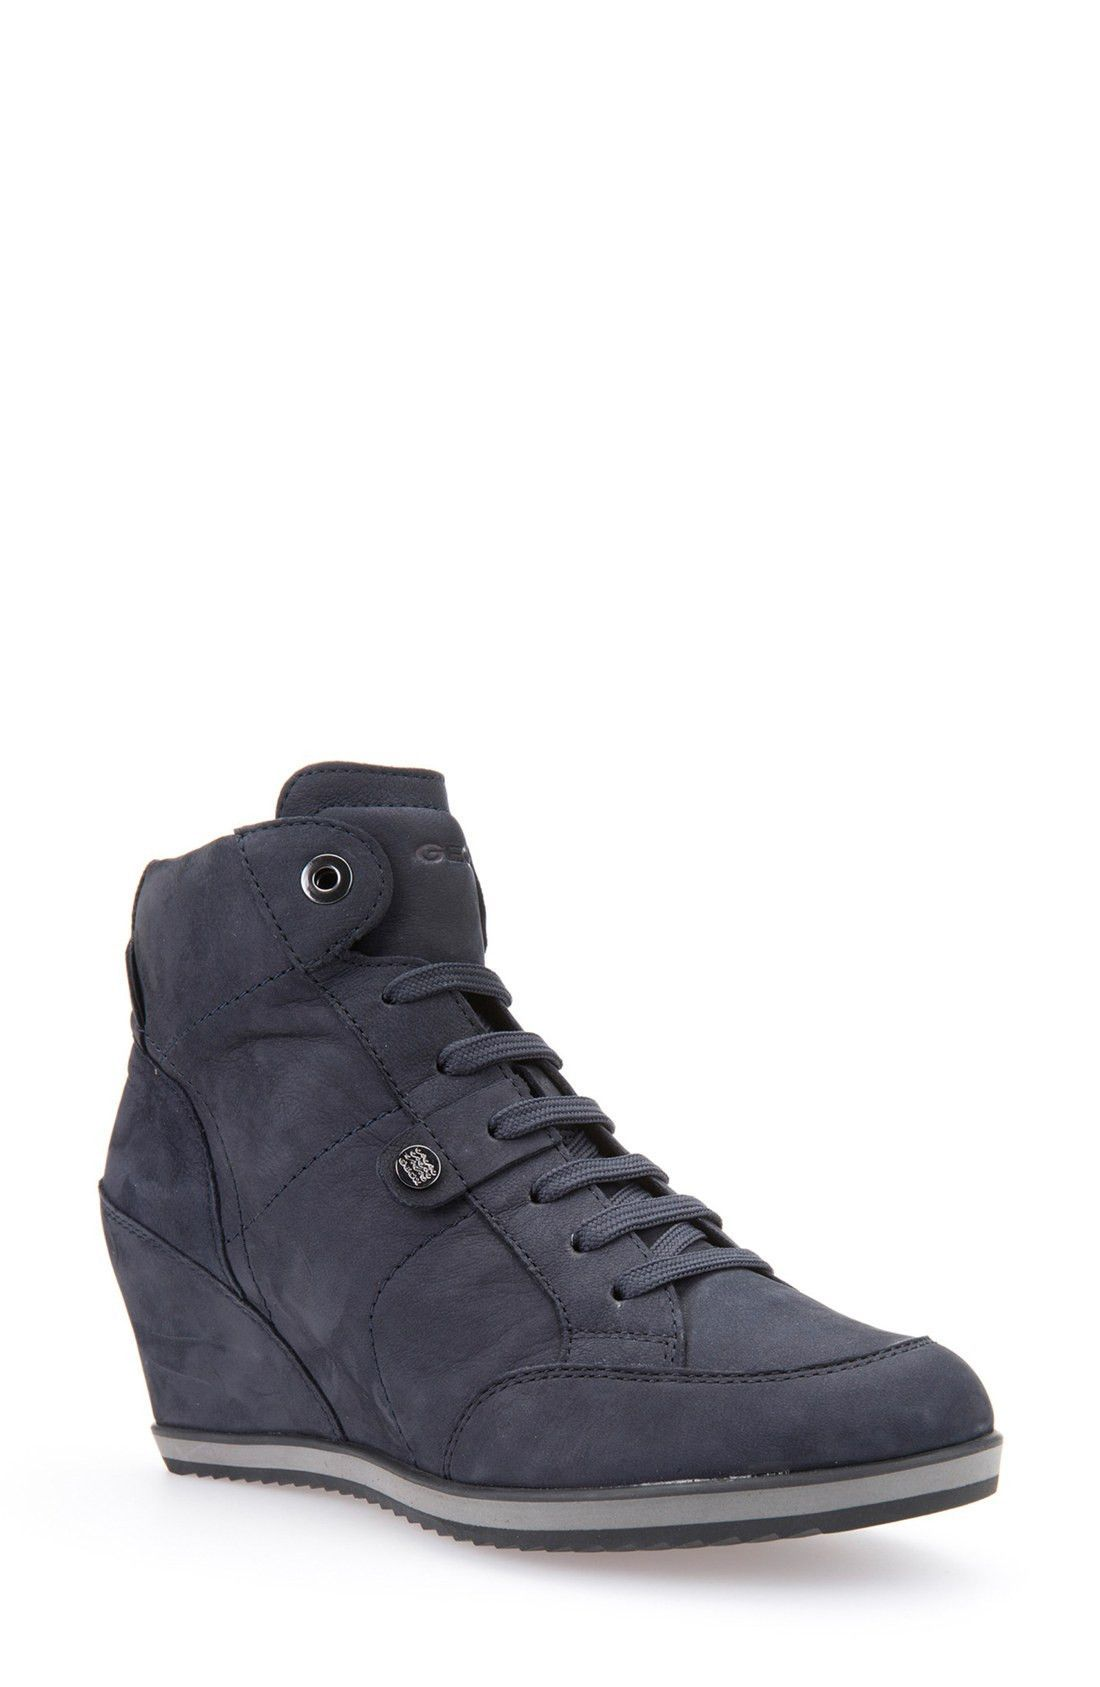 f7db4dafd6 Geox 'Illusion 25' High Top Wedge Sneaker (Women) | Shoes | High top ...